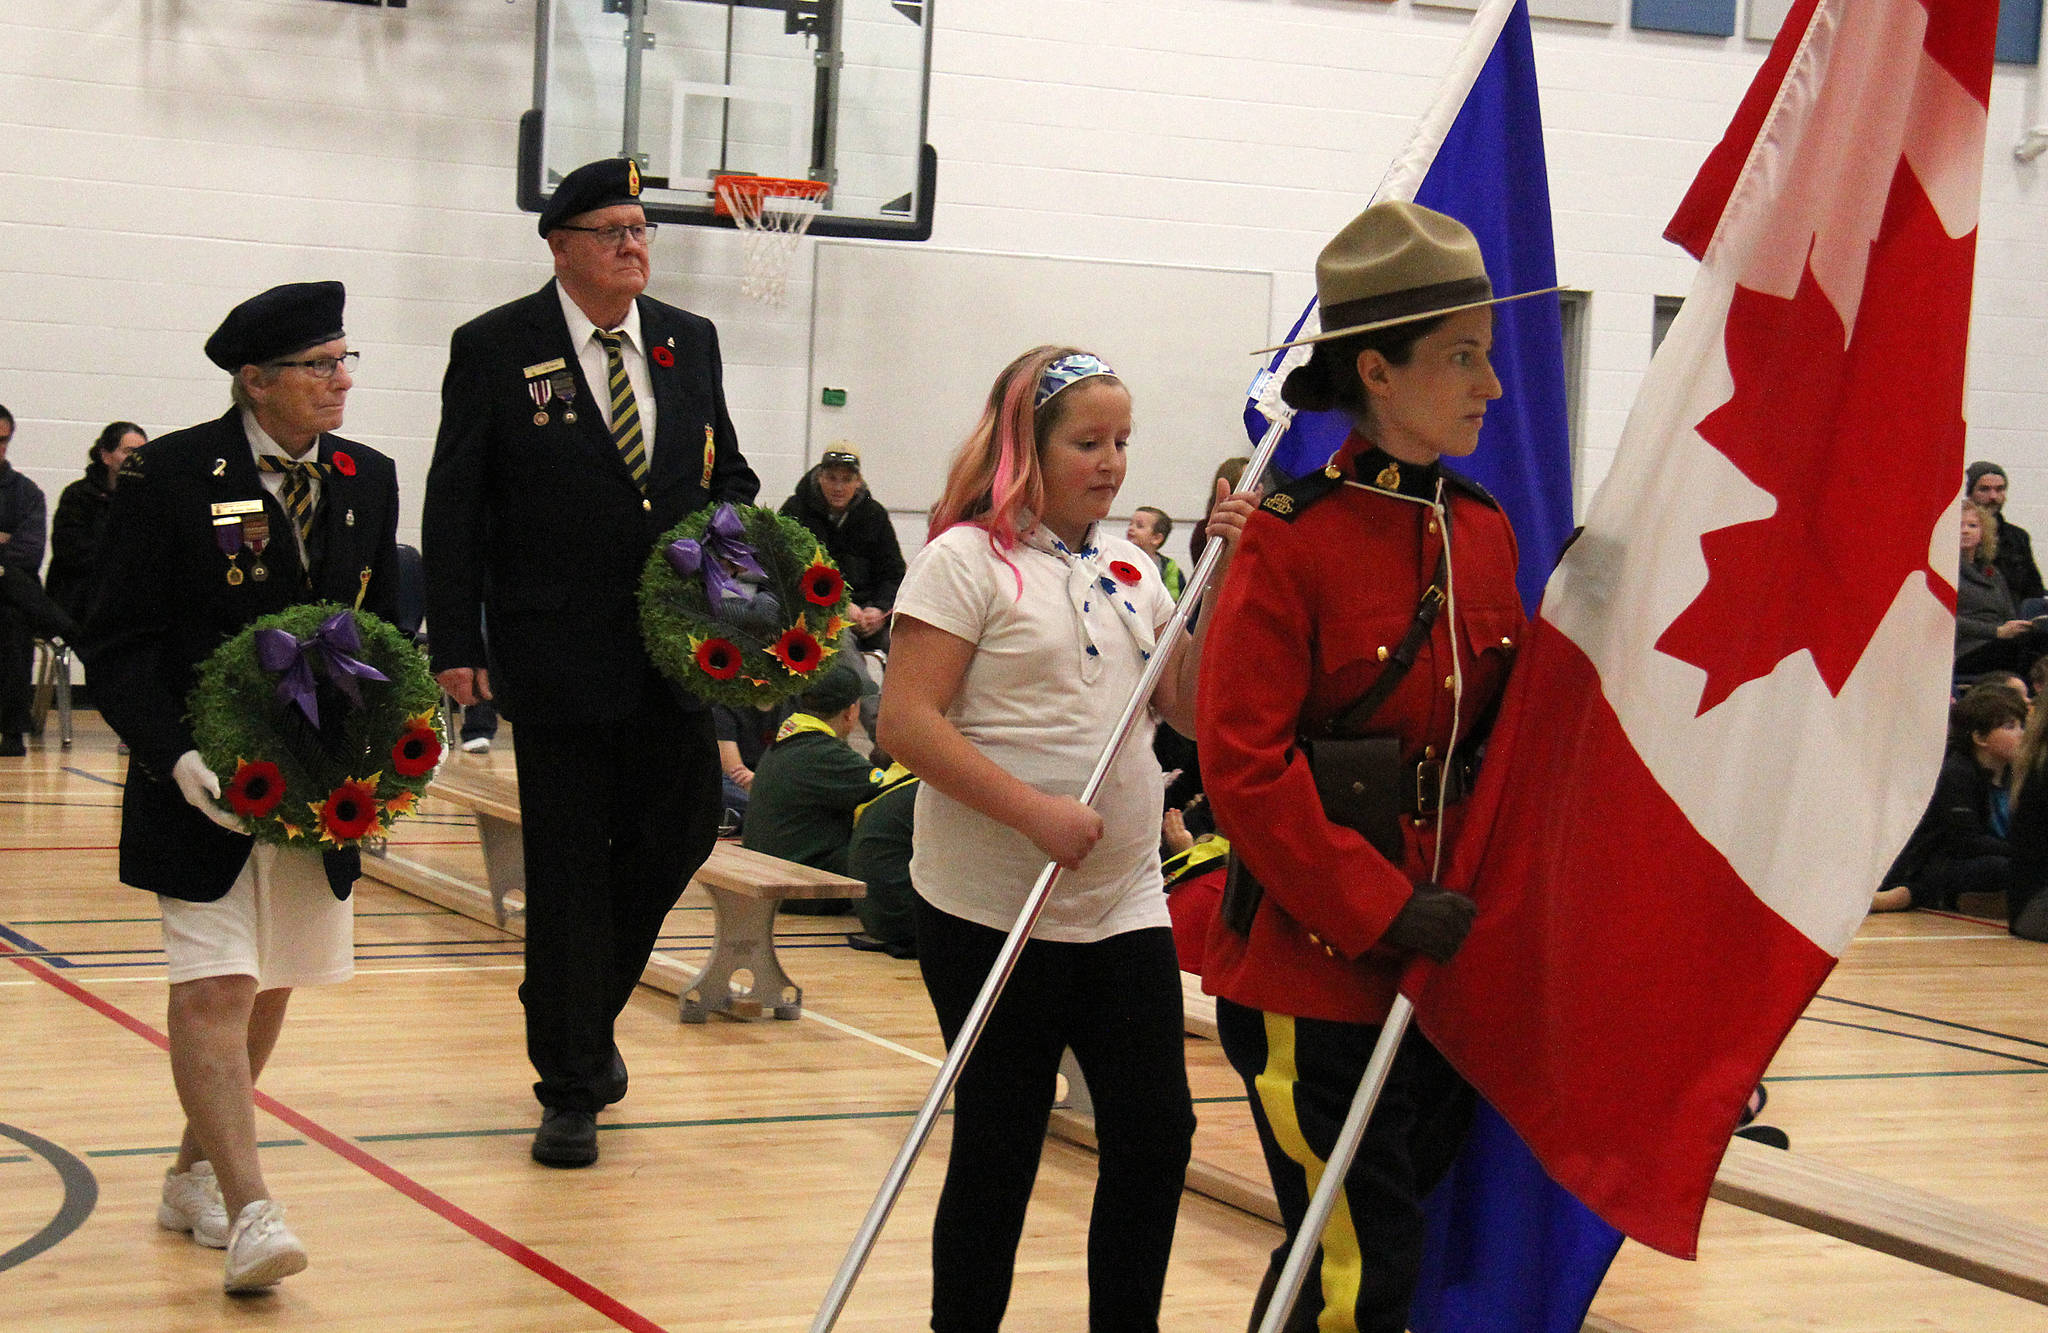 Avery Fitch carries the Alberta flag at he beginning of Beacon Hill's Remembrance Day assembly. She was joined by Cst. Tania Donaldson who carried the Canadian flag and members of the Sylvan Lake Legion.